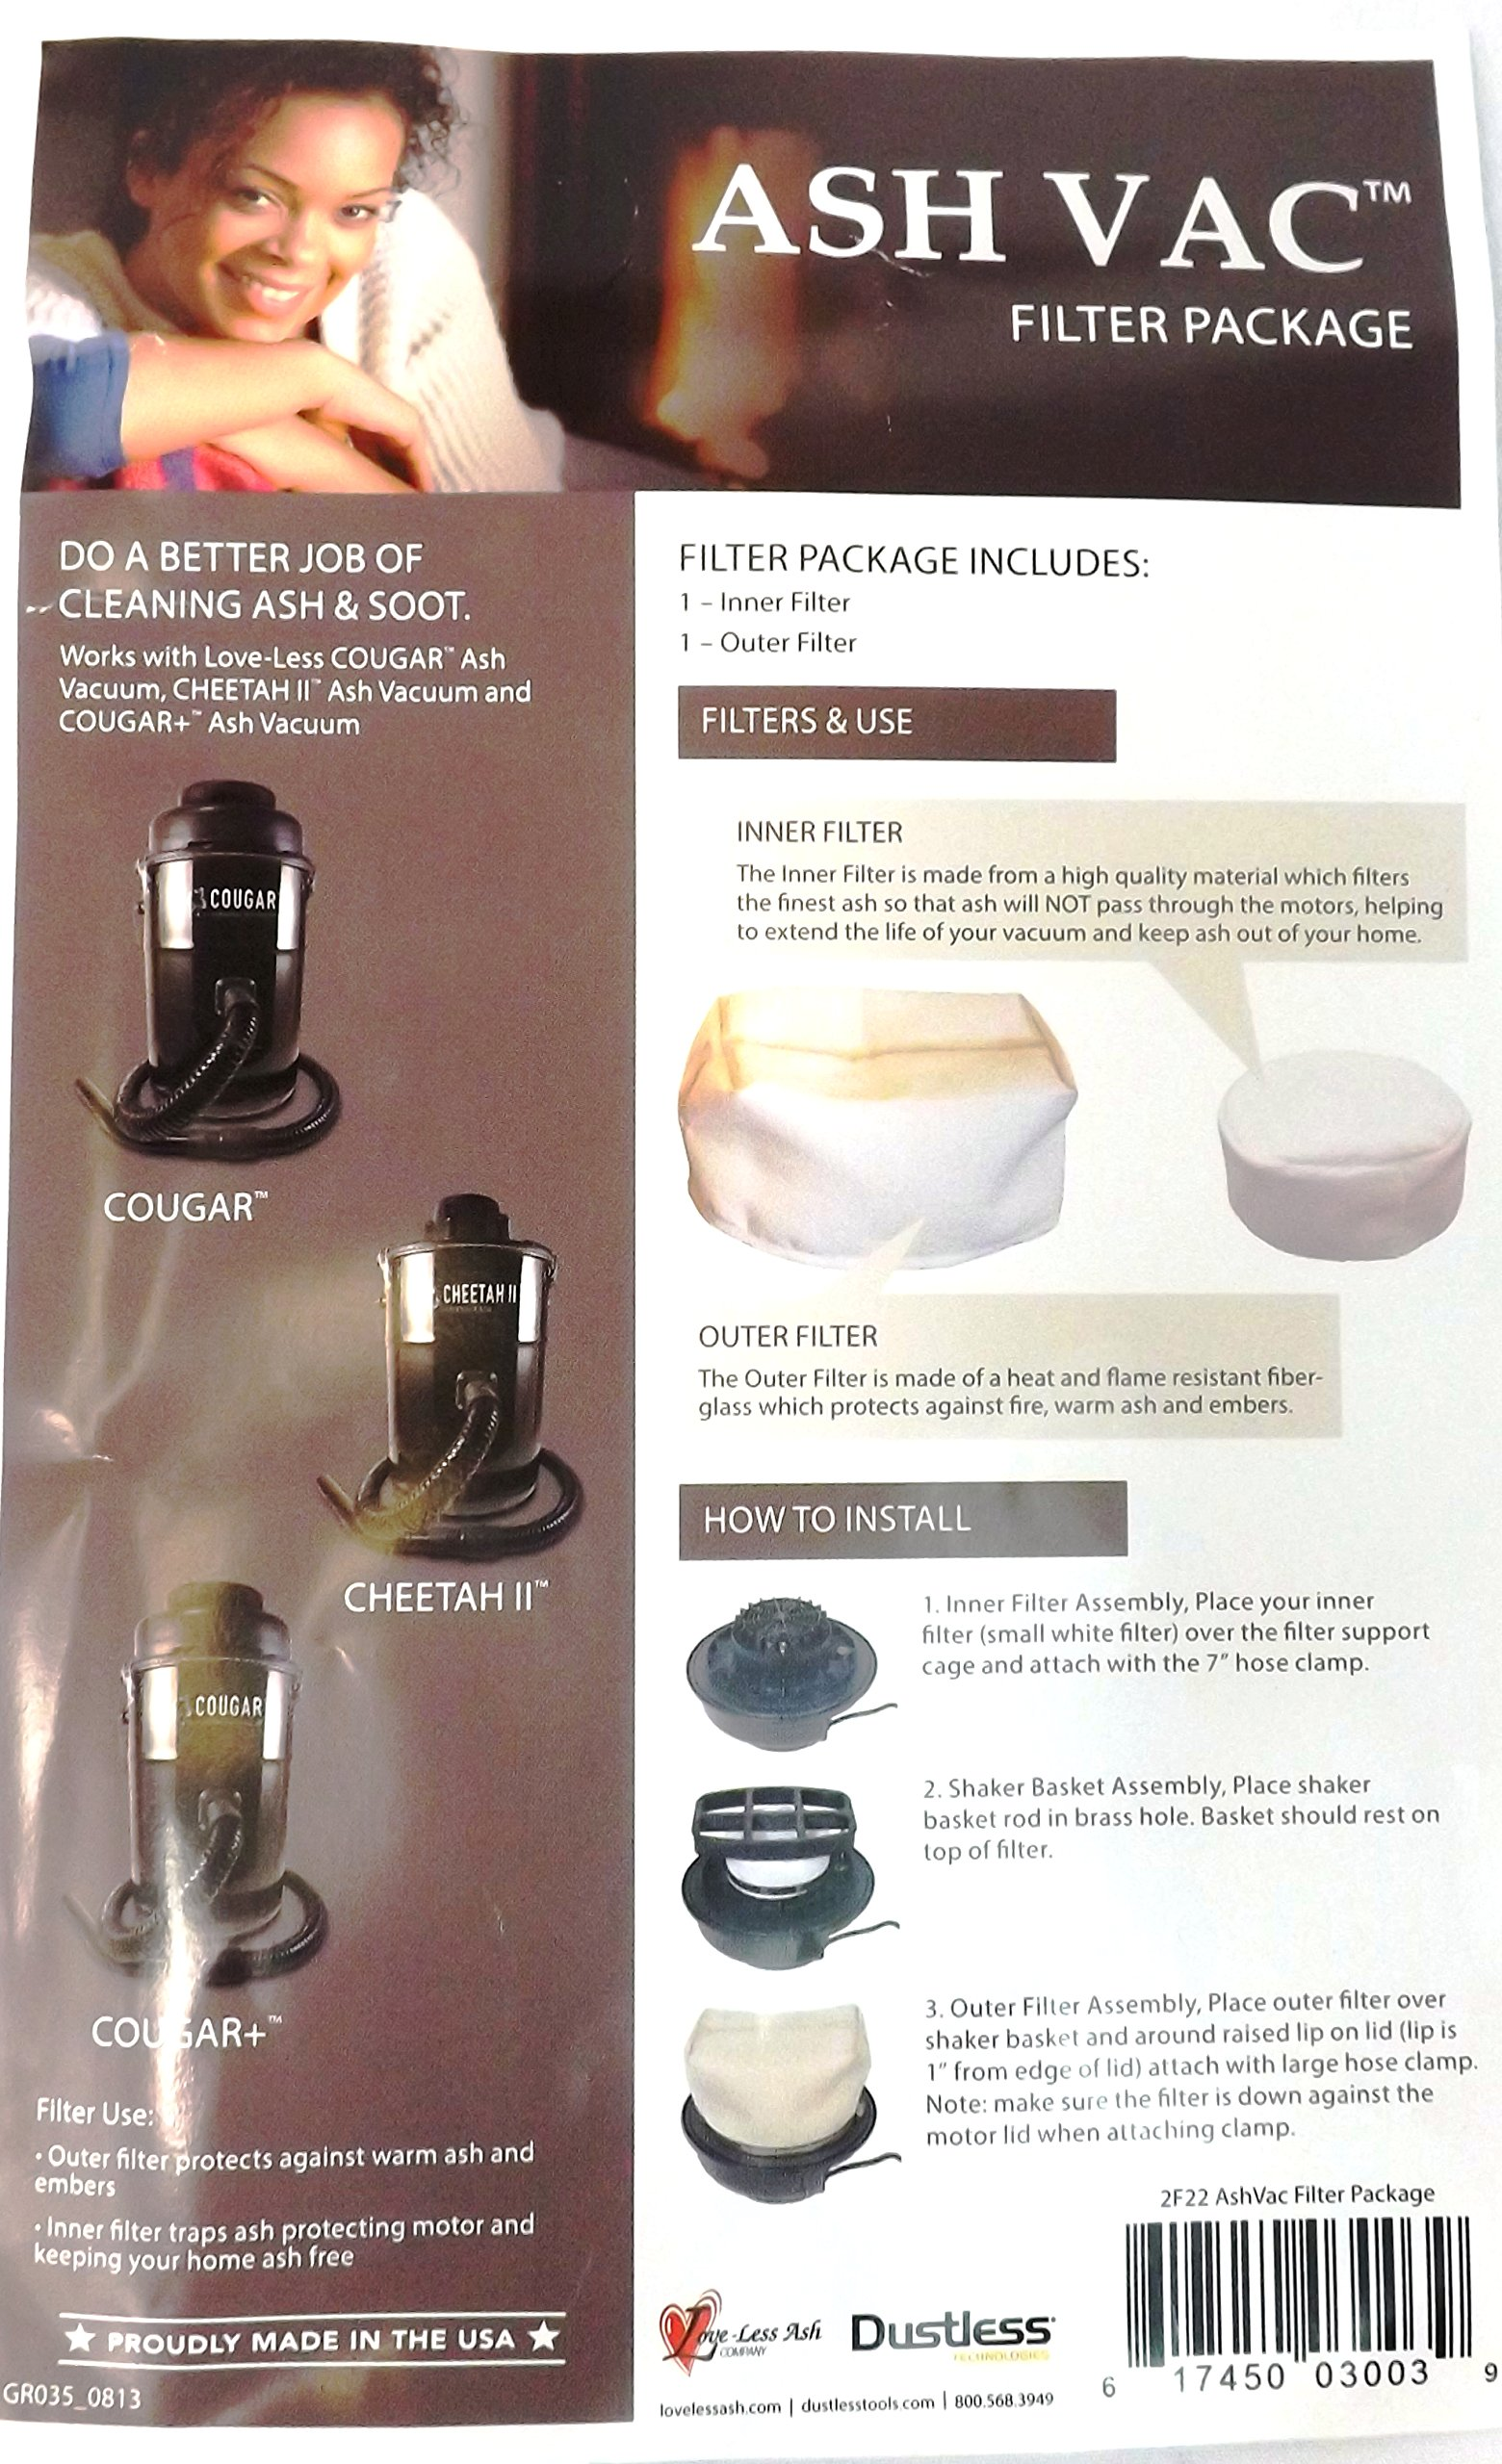 Filter Package for Cheetah and Cougar Ash Vacuums